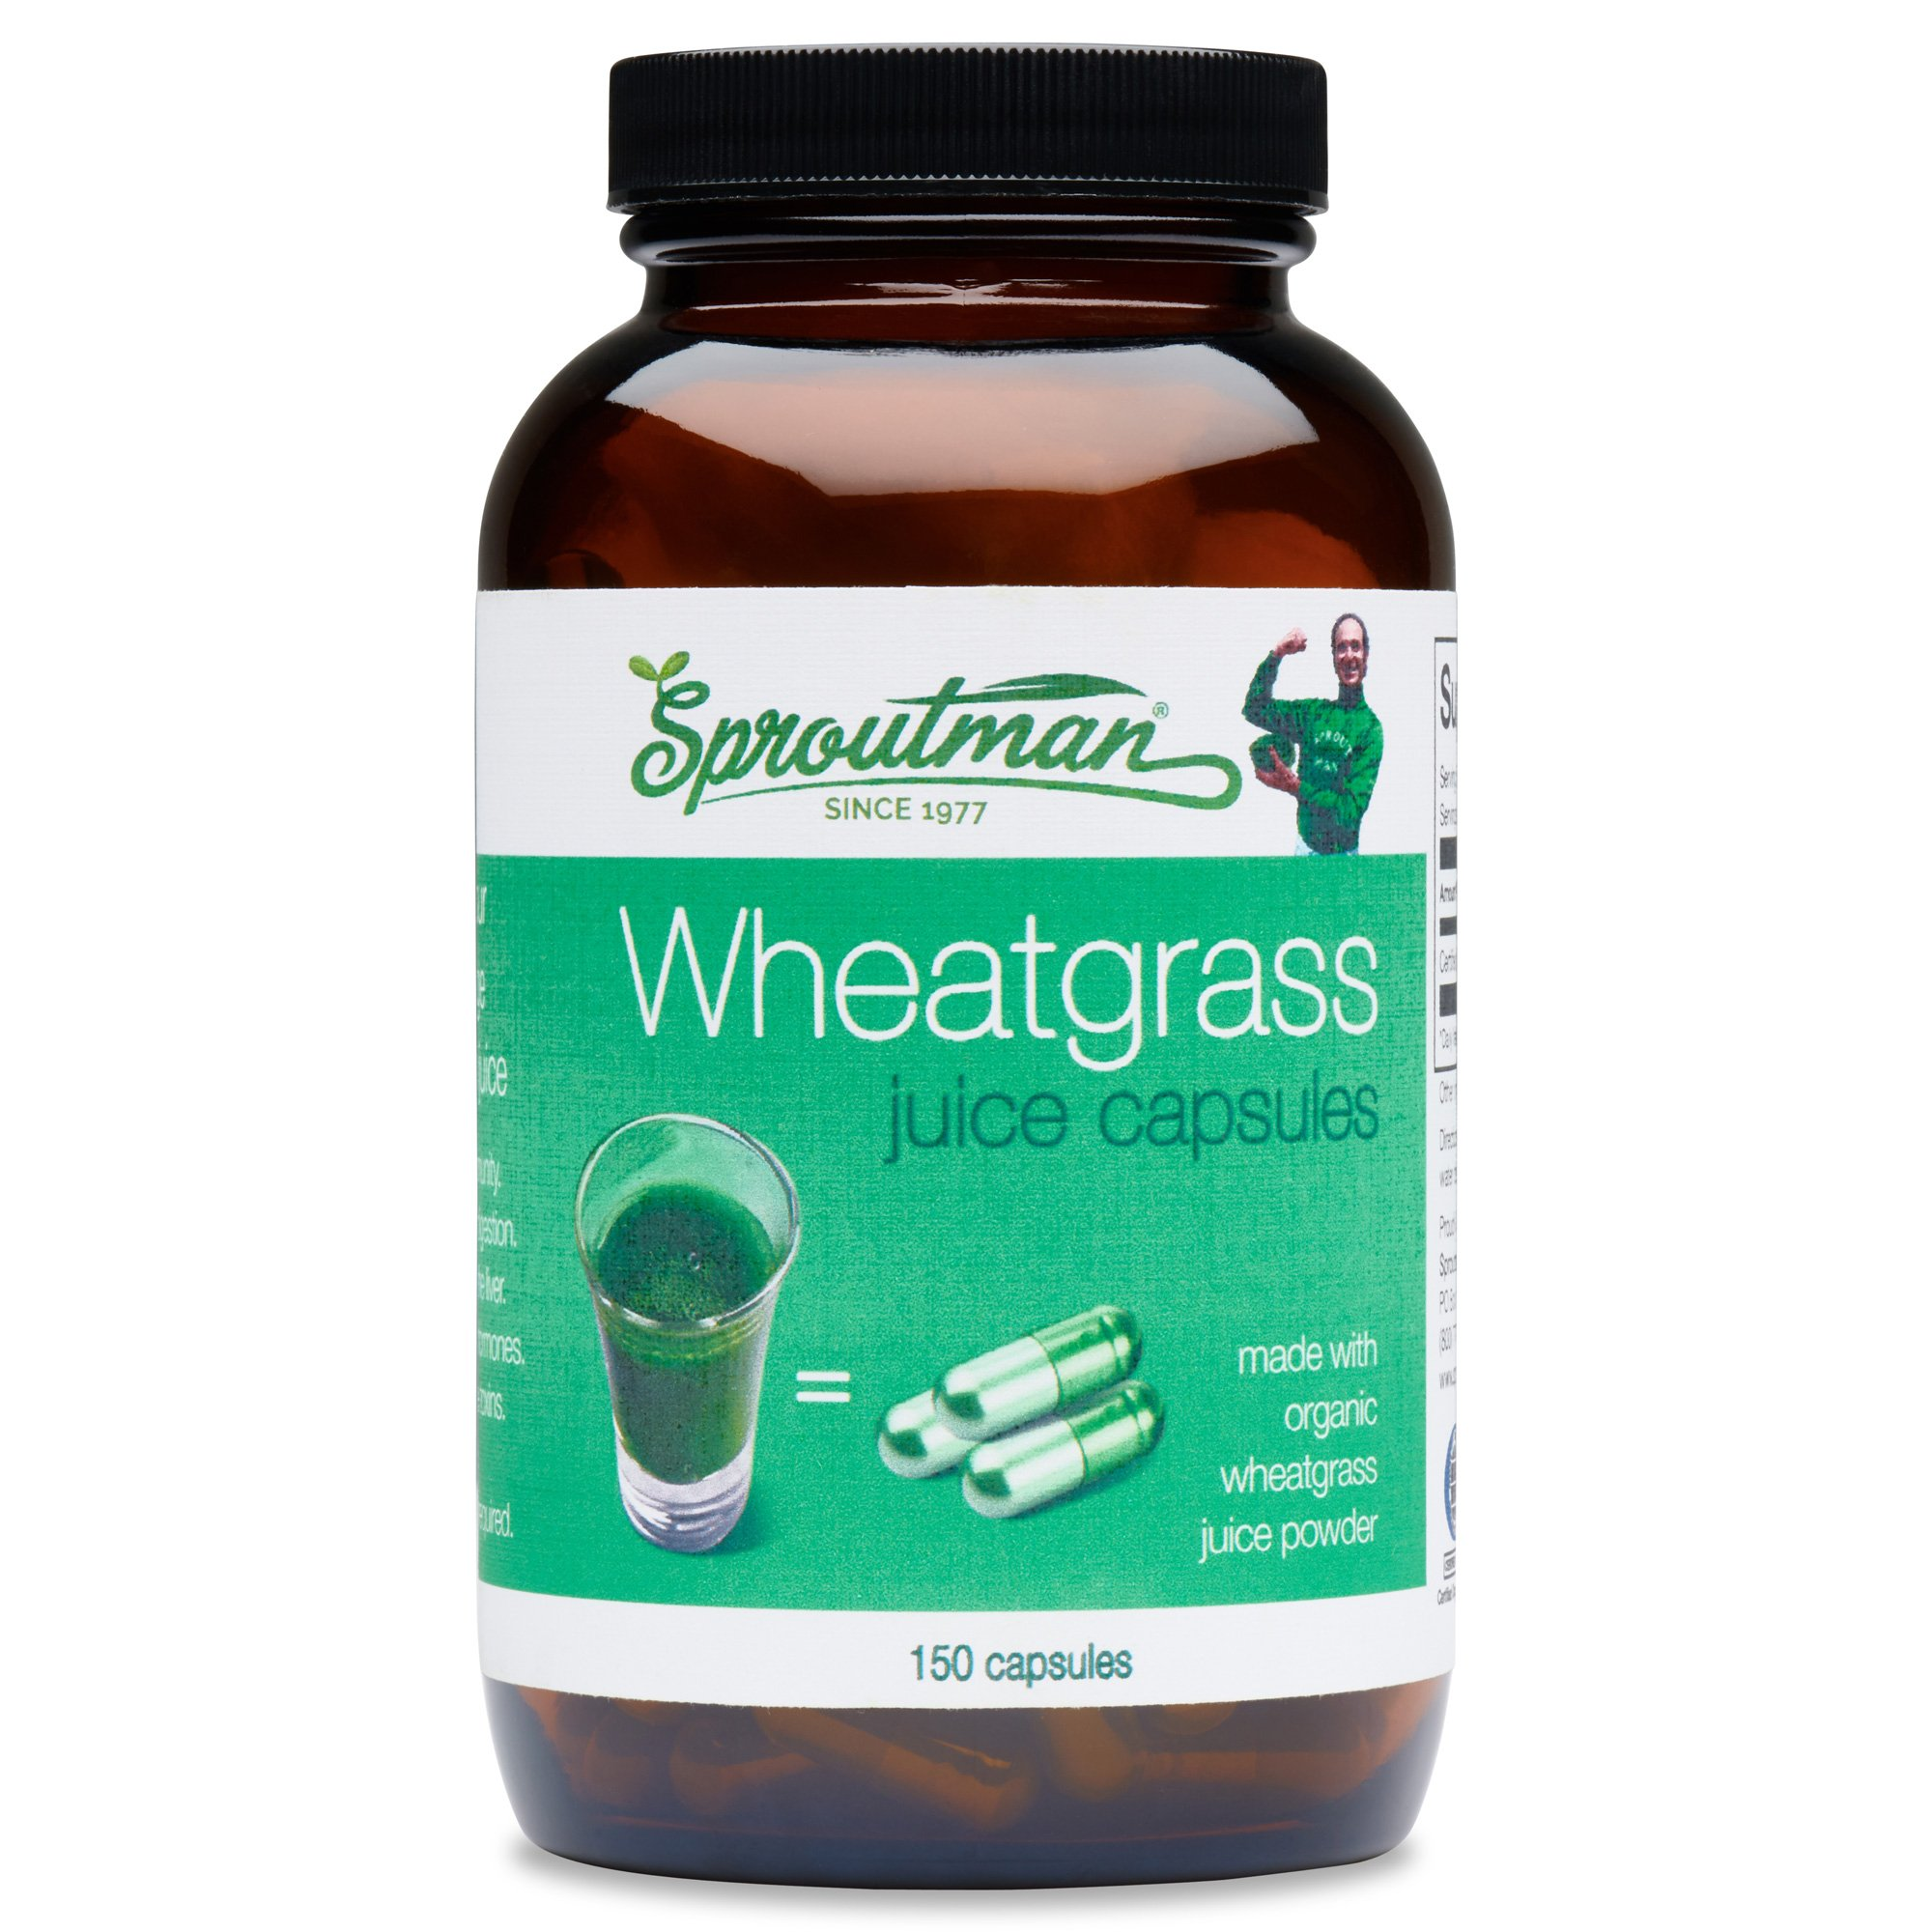 Sproutman Wheatgrass Juice Capsules – Organic Wheatgrass Juice Powder in Caps for Hassle-Free Wheatgrass Shots High in Vitamins, Antioxidants, Chlorophyll, Live Enzymes, Minerals & Energy, 50 servings